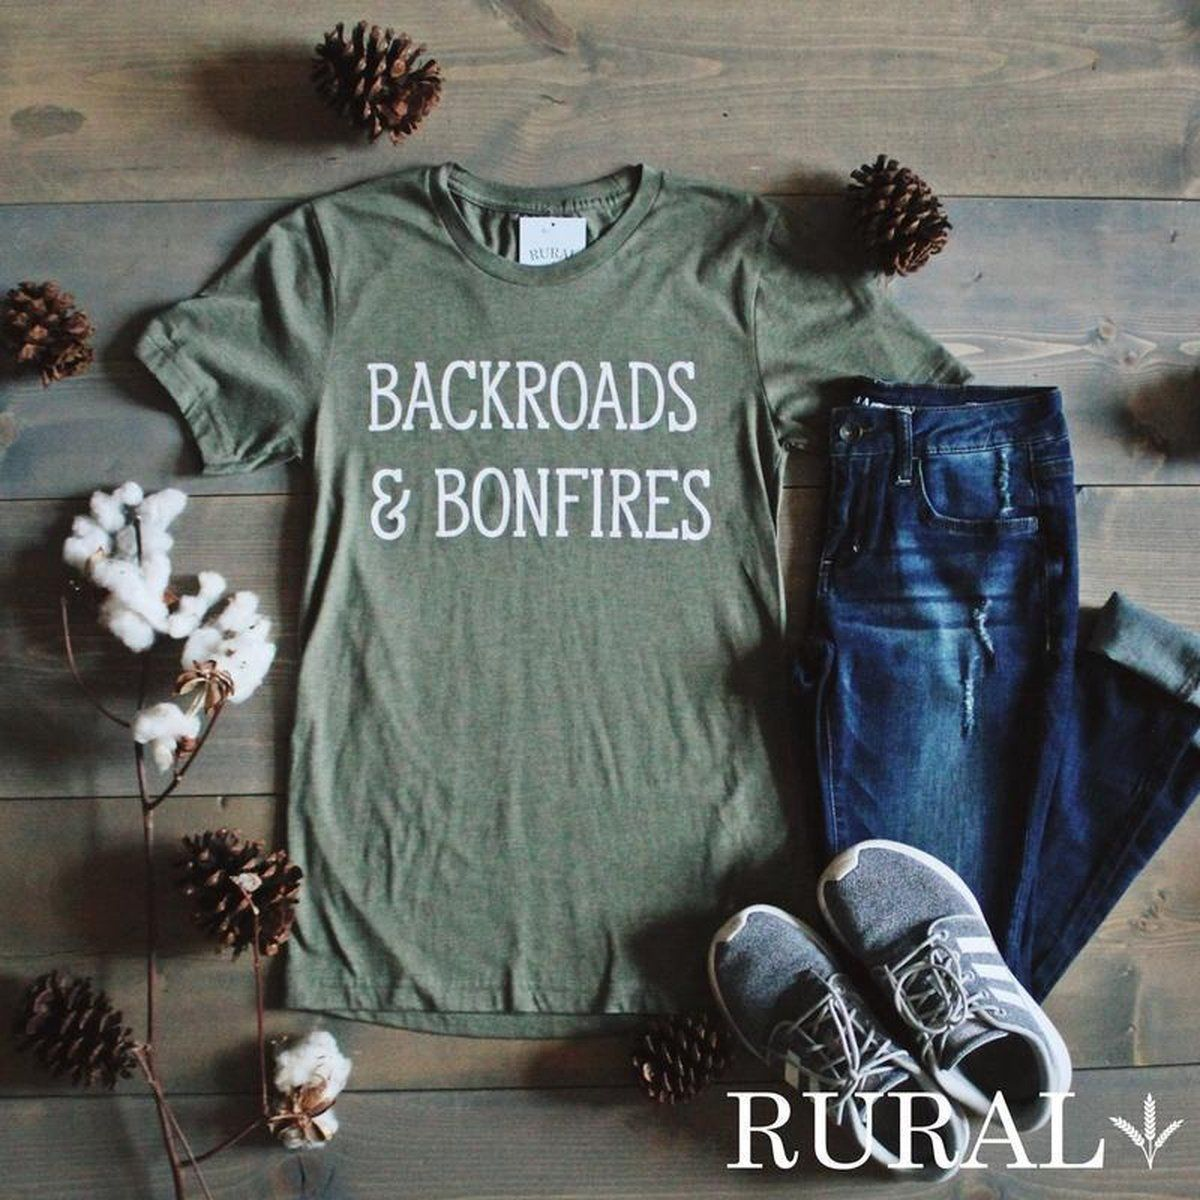 f5837dcddfff backroads and bonfires graphic tee, backroads and bonfires rural tee,  backroads and bonfires,